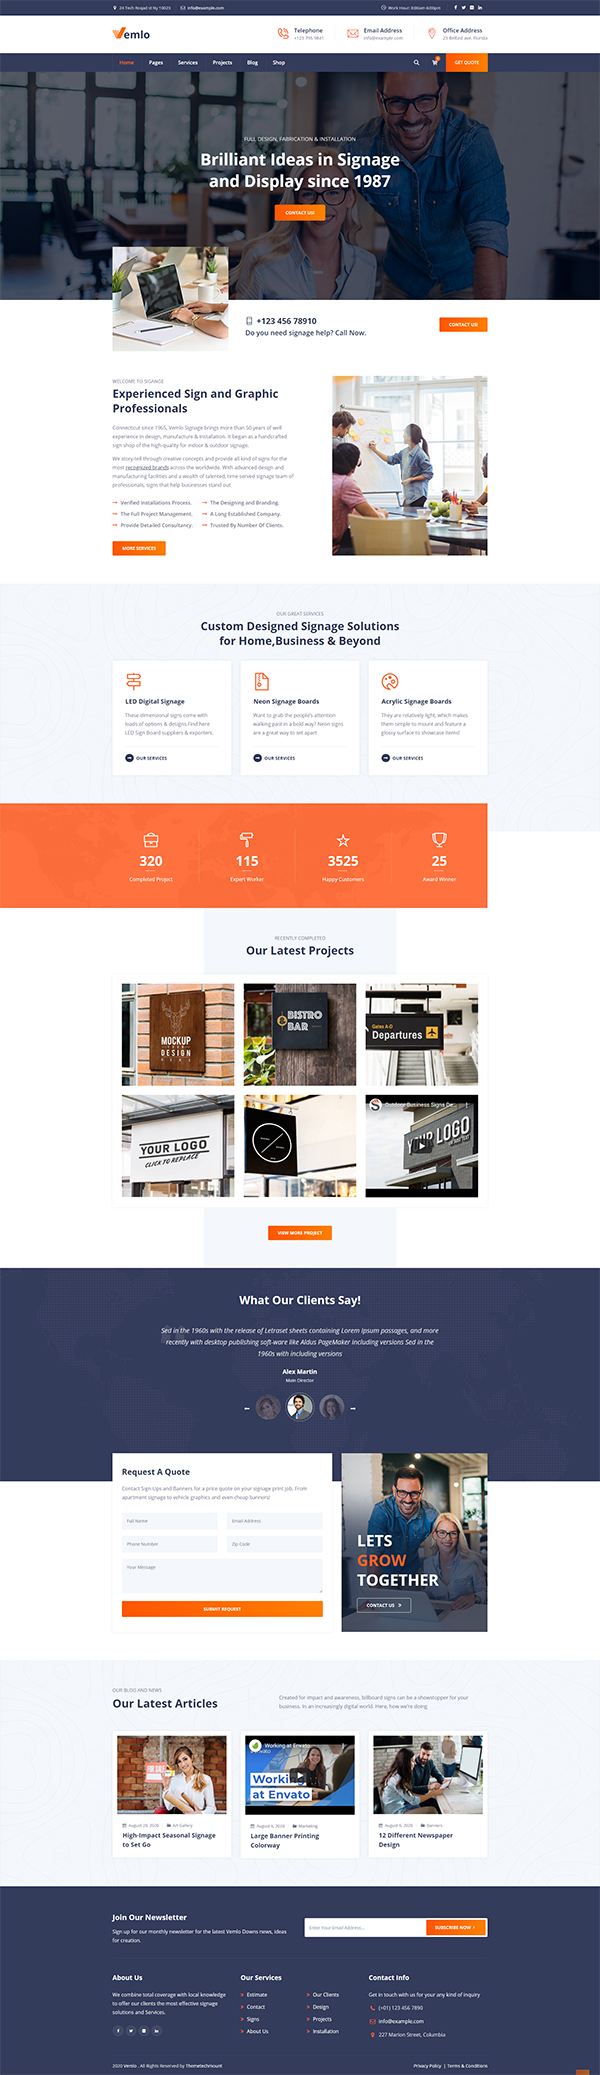 Vemlo - Digital Signage Services WordPress Theme